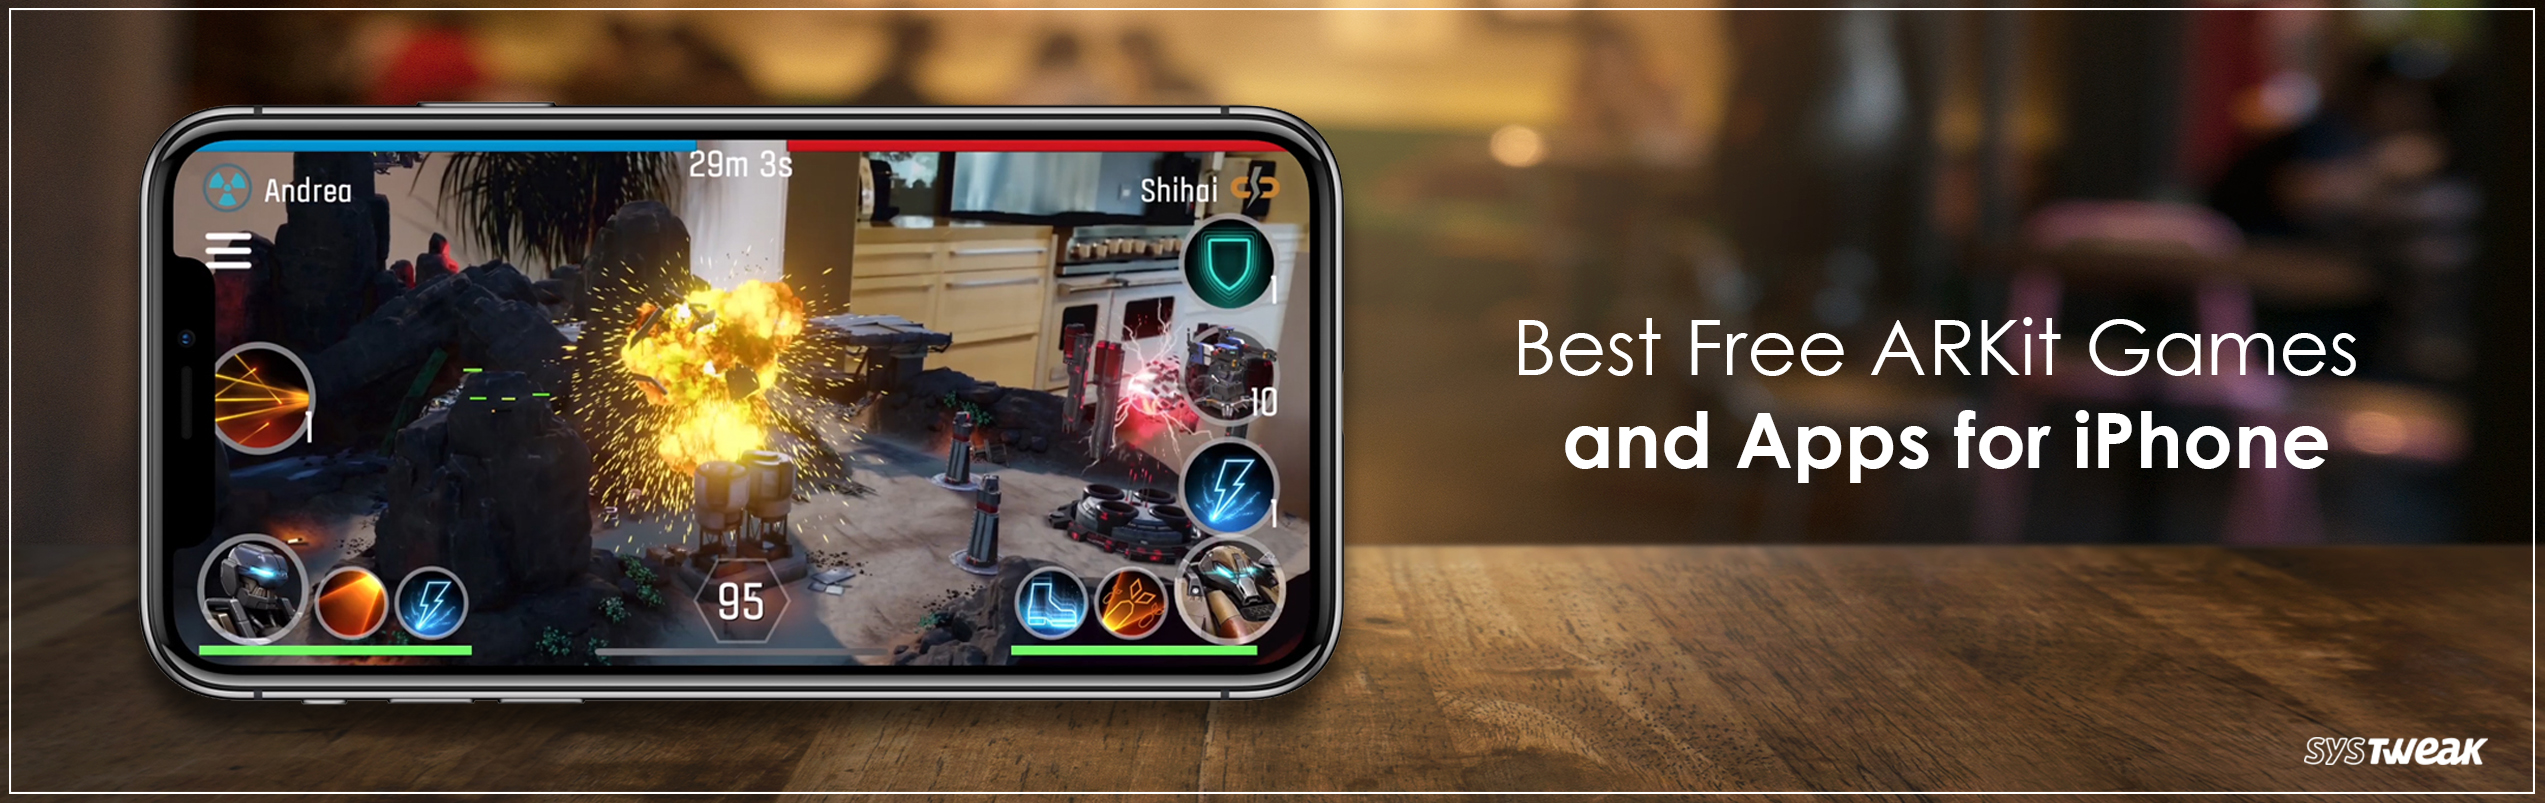 Best Free ARKit Games & Apps for iPhone